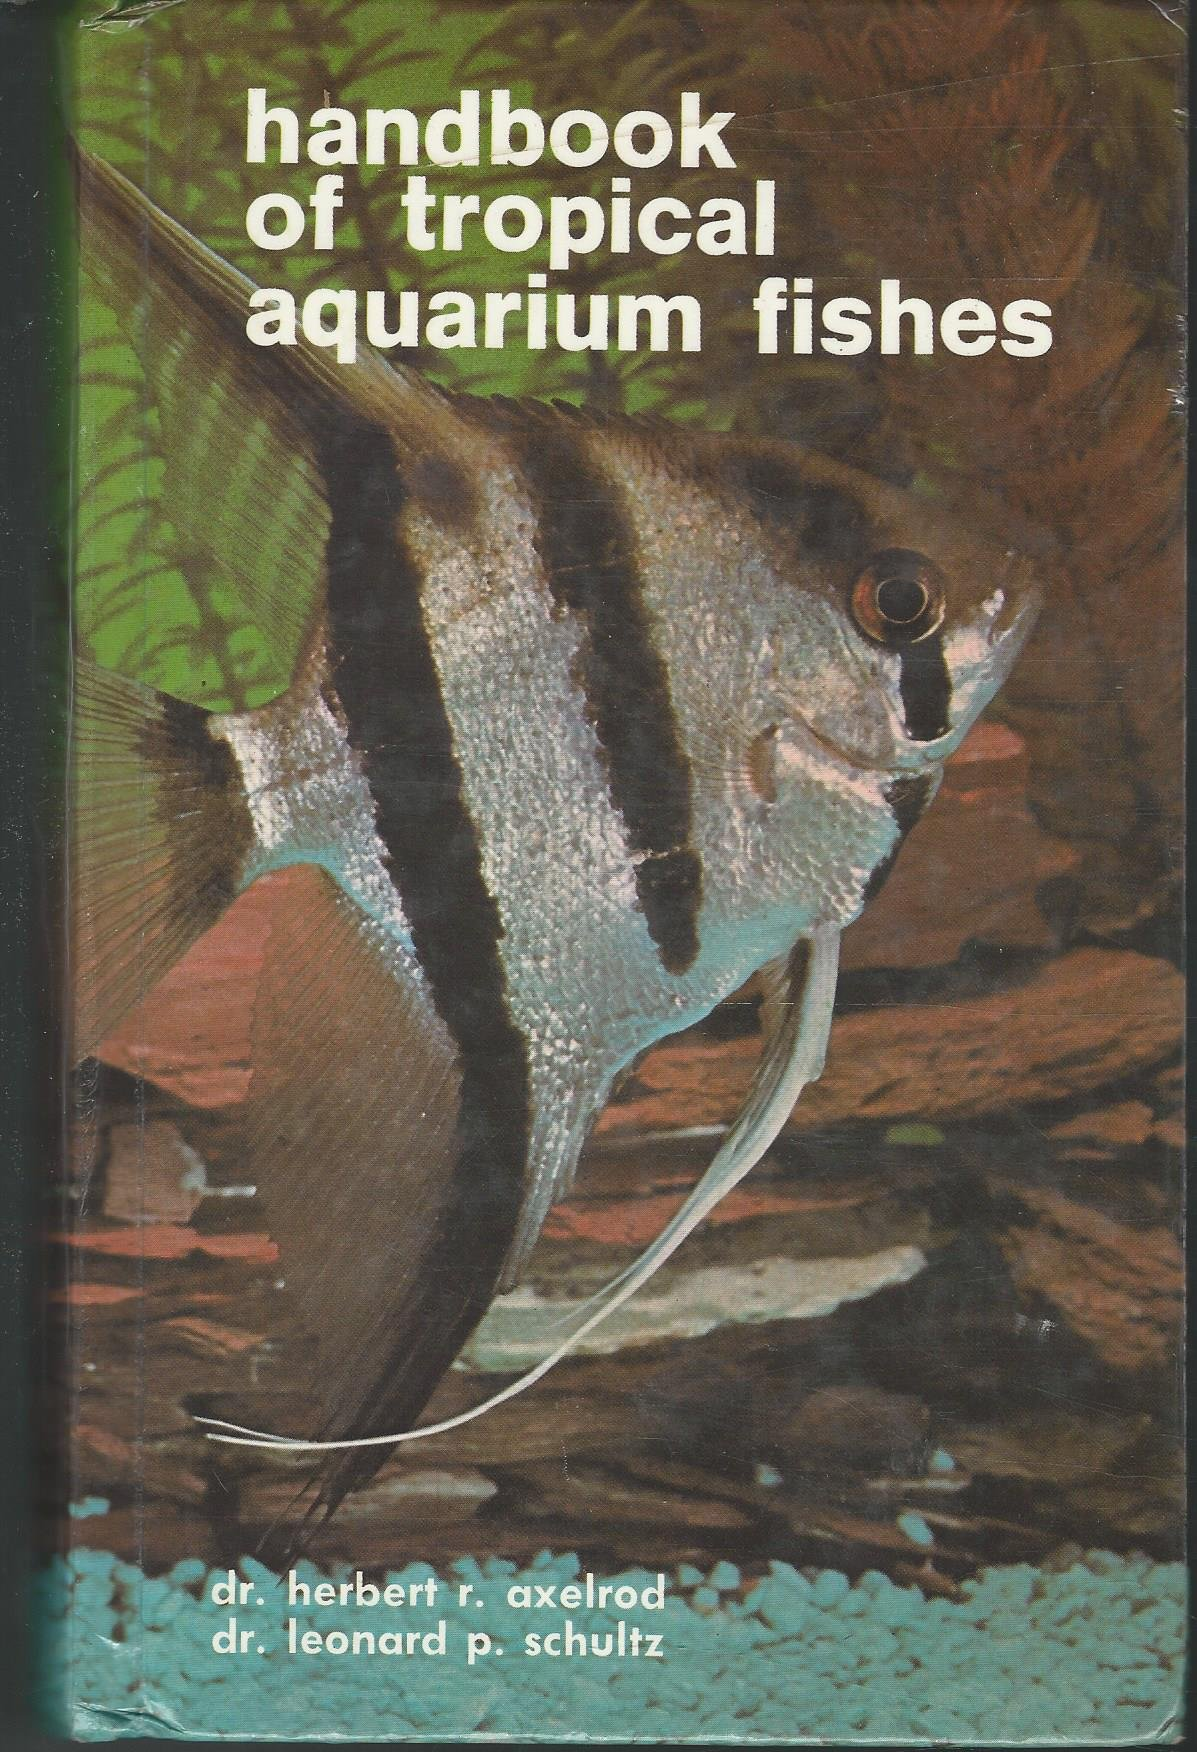 500 freshwater aquarium fish by greg jennings - Handbook Of Tropical Aquarium Fishes Herbert R Axelrod Leonard P Schultz 9780876664919 Amazon Com Books